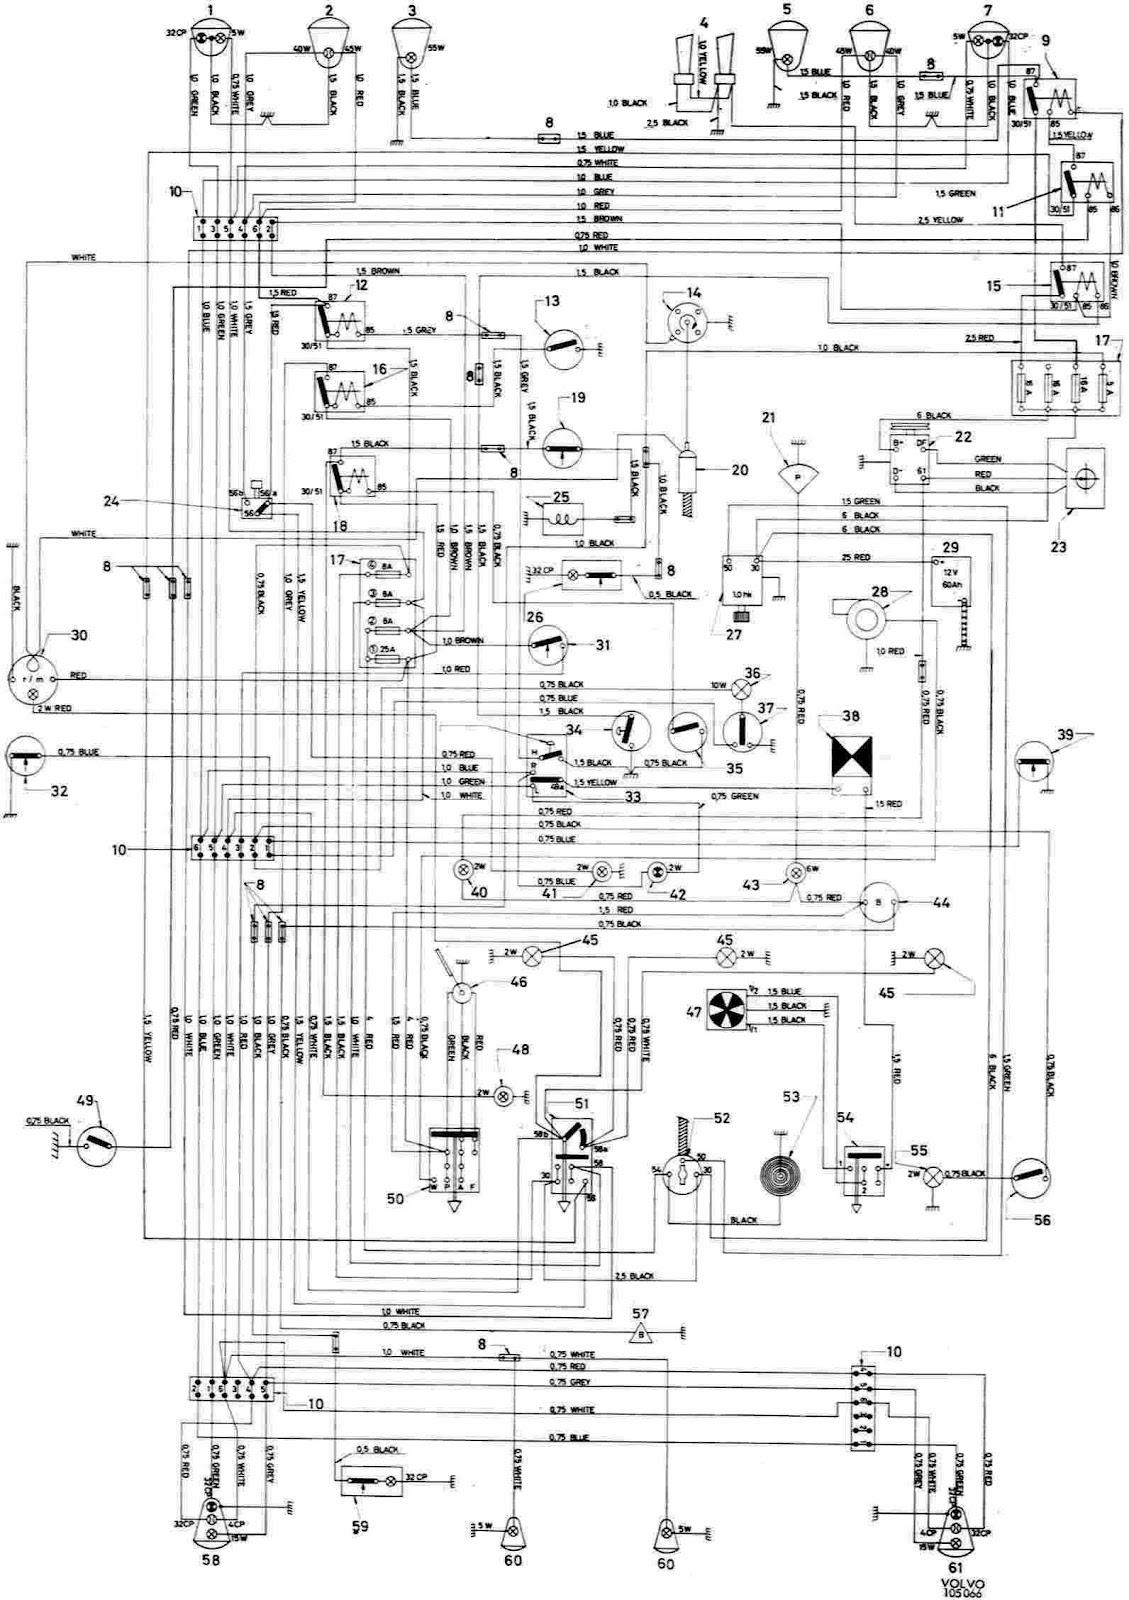 hight resolution of volvo semi truck dash wiring wiring diagram paper202 volvo truck wiring diagram wiring diagram centre volvo